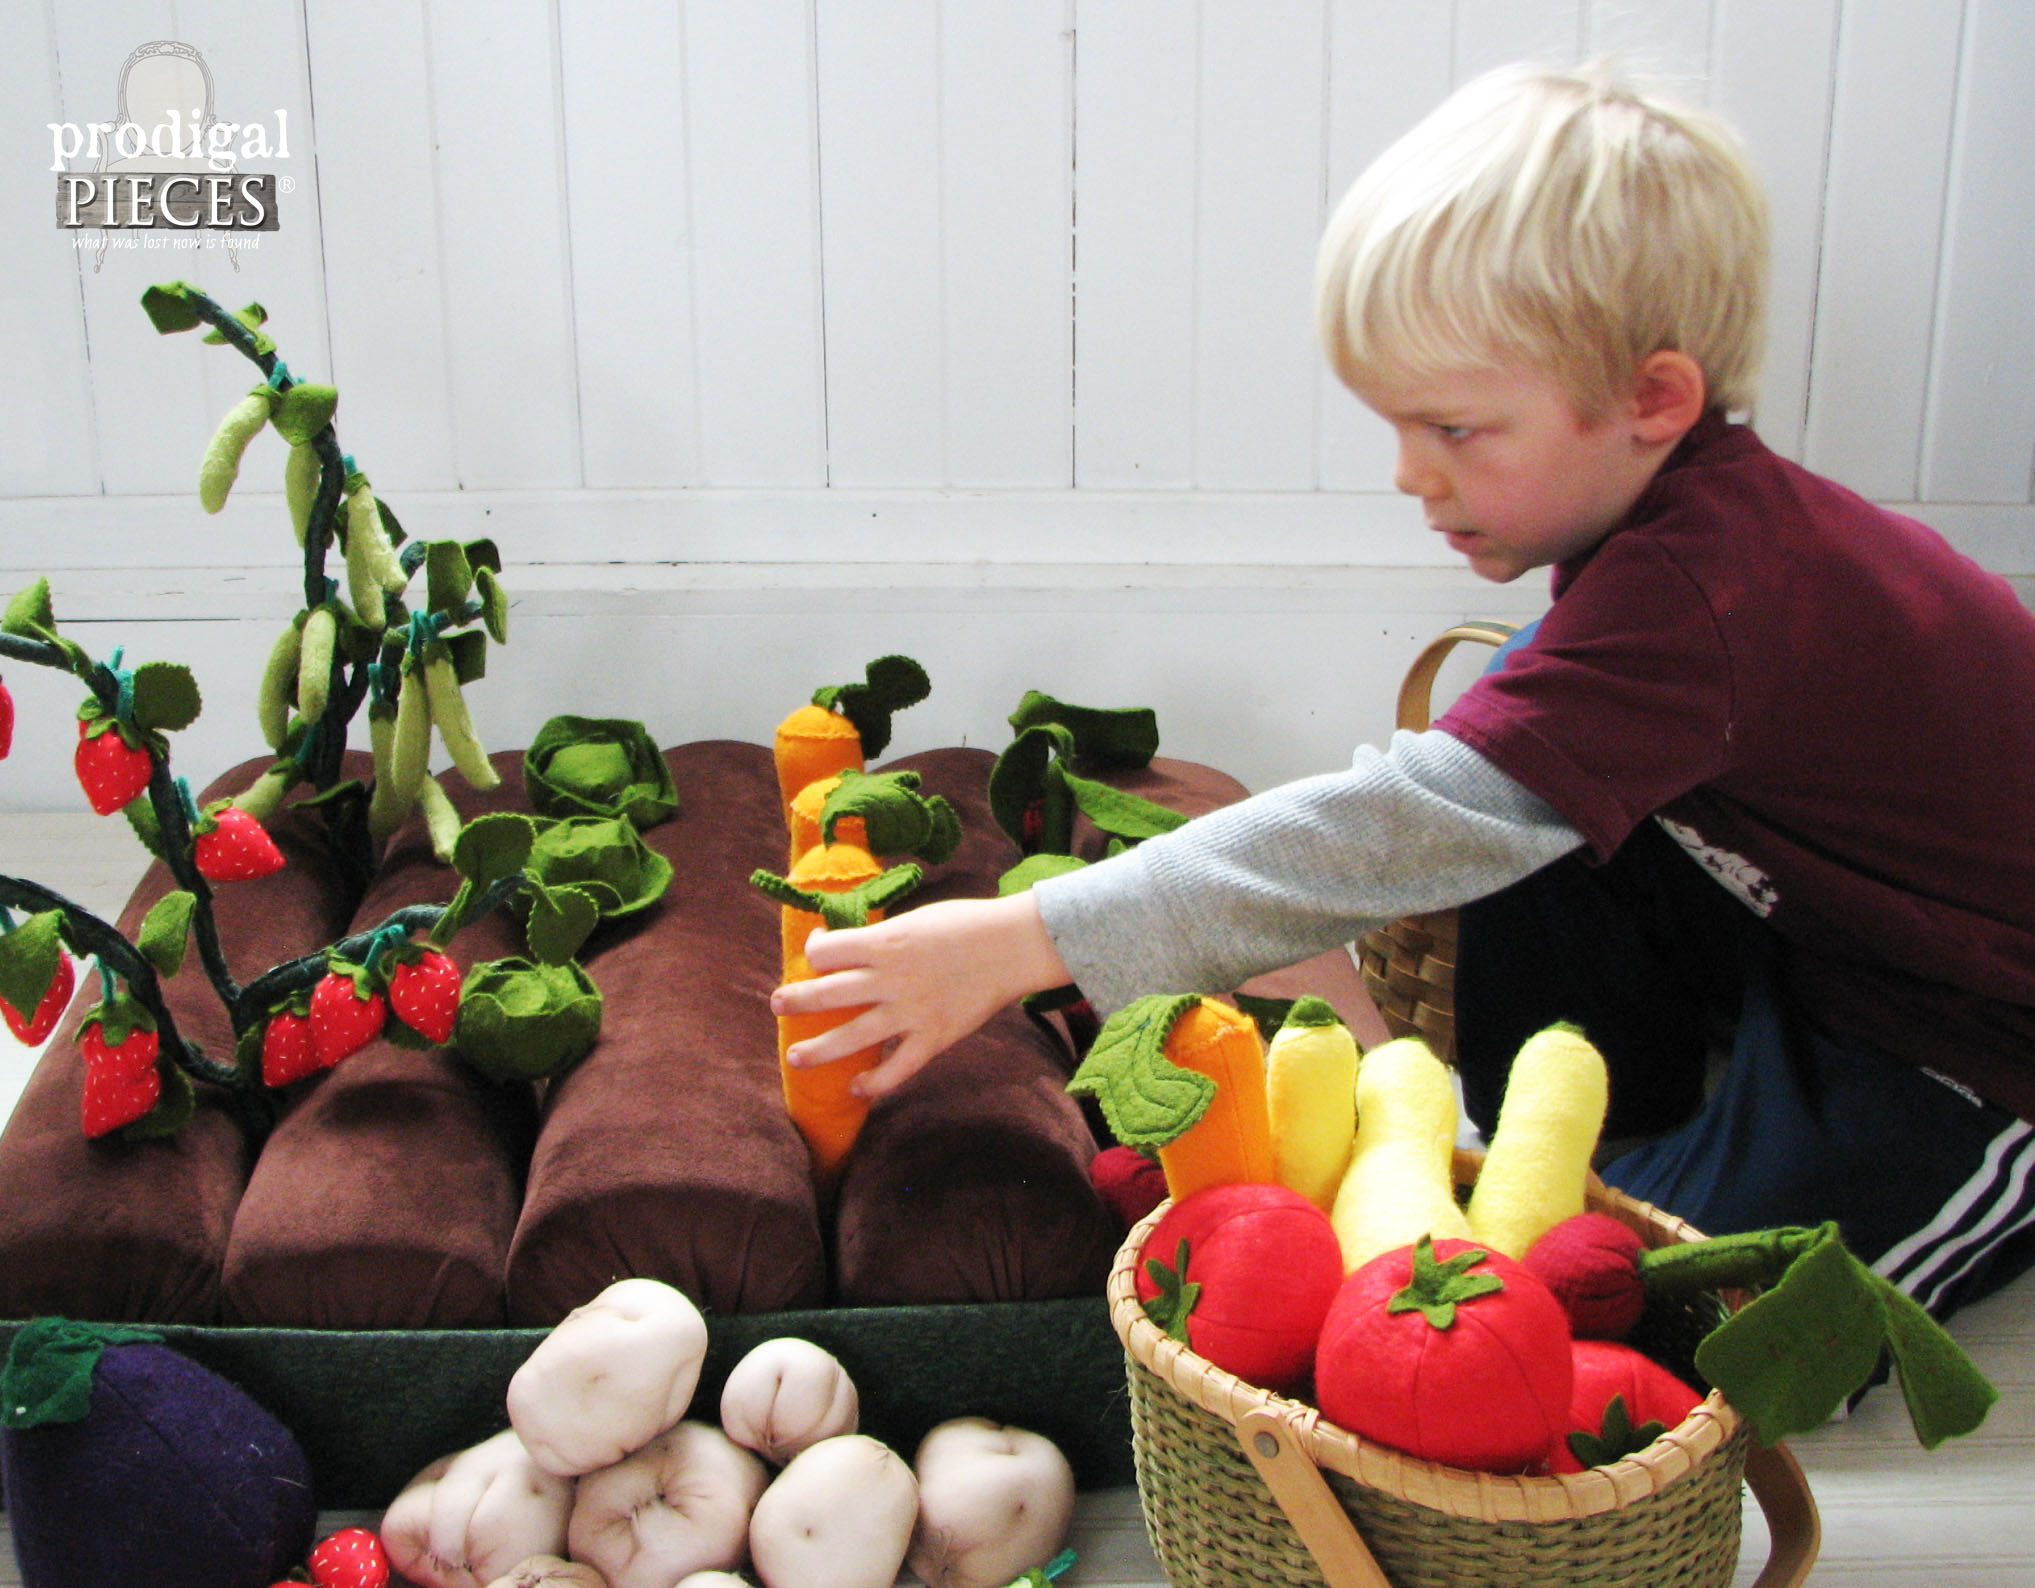 Handmade Pretend Play Garden with Felt Fruits & Veggies by Prodigal Pieces | www.prodigalpieces.com